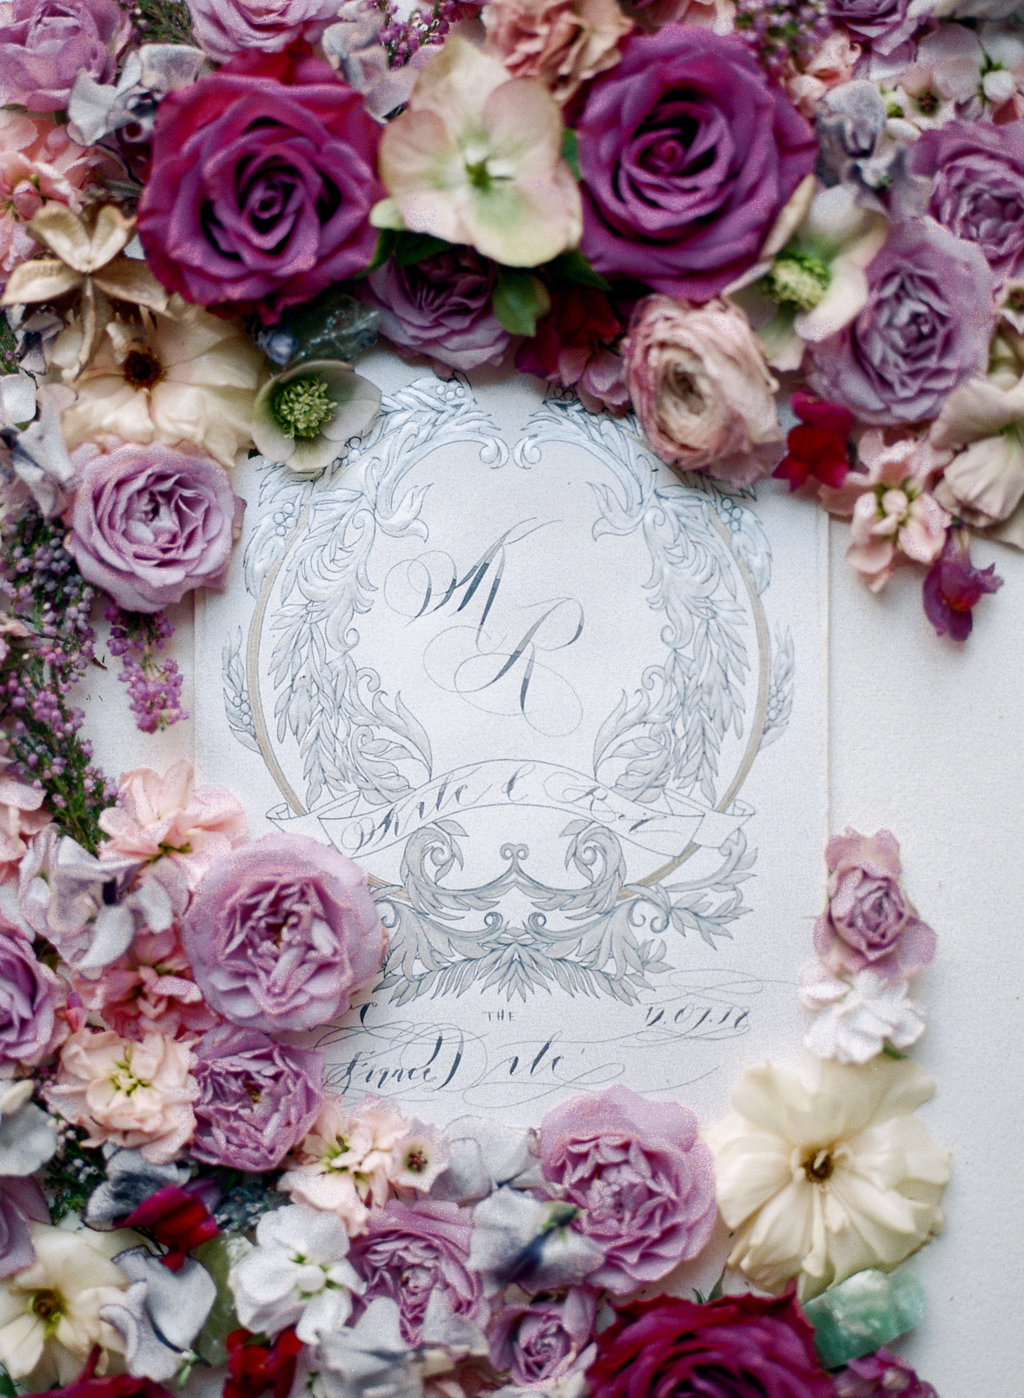 White and silver wedding crest with monogram design and styled with large pink roses